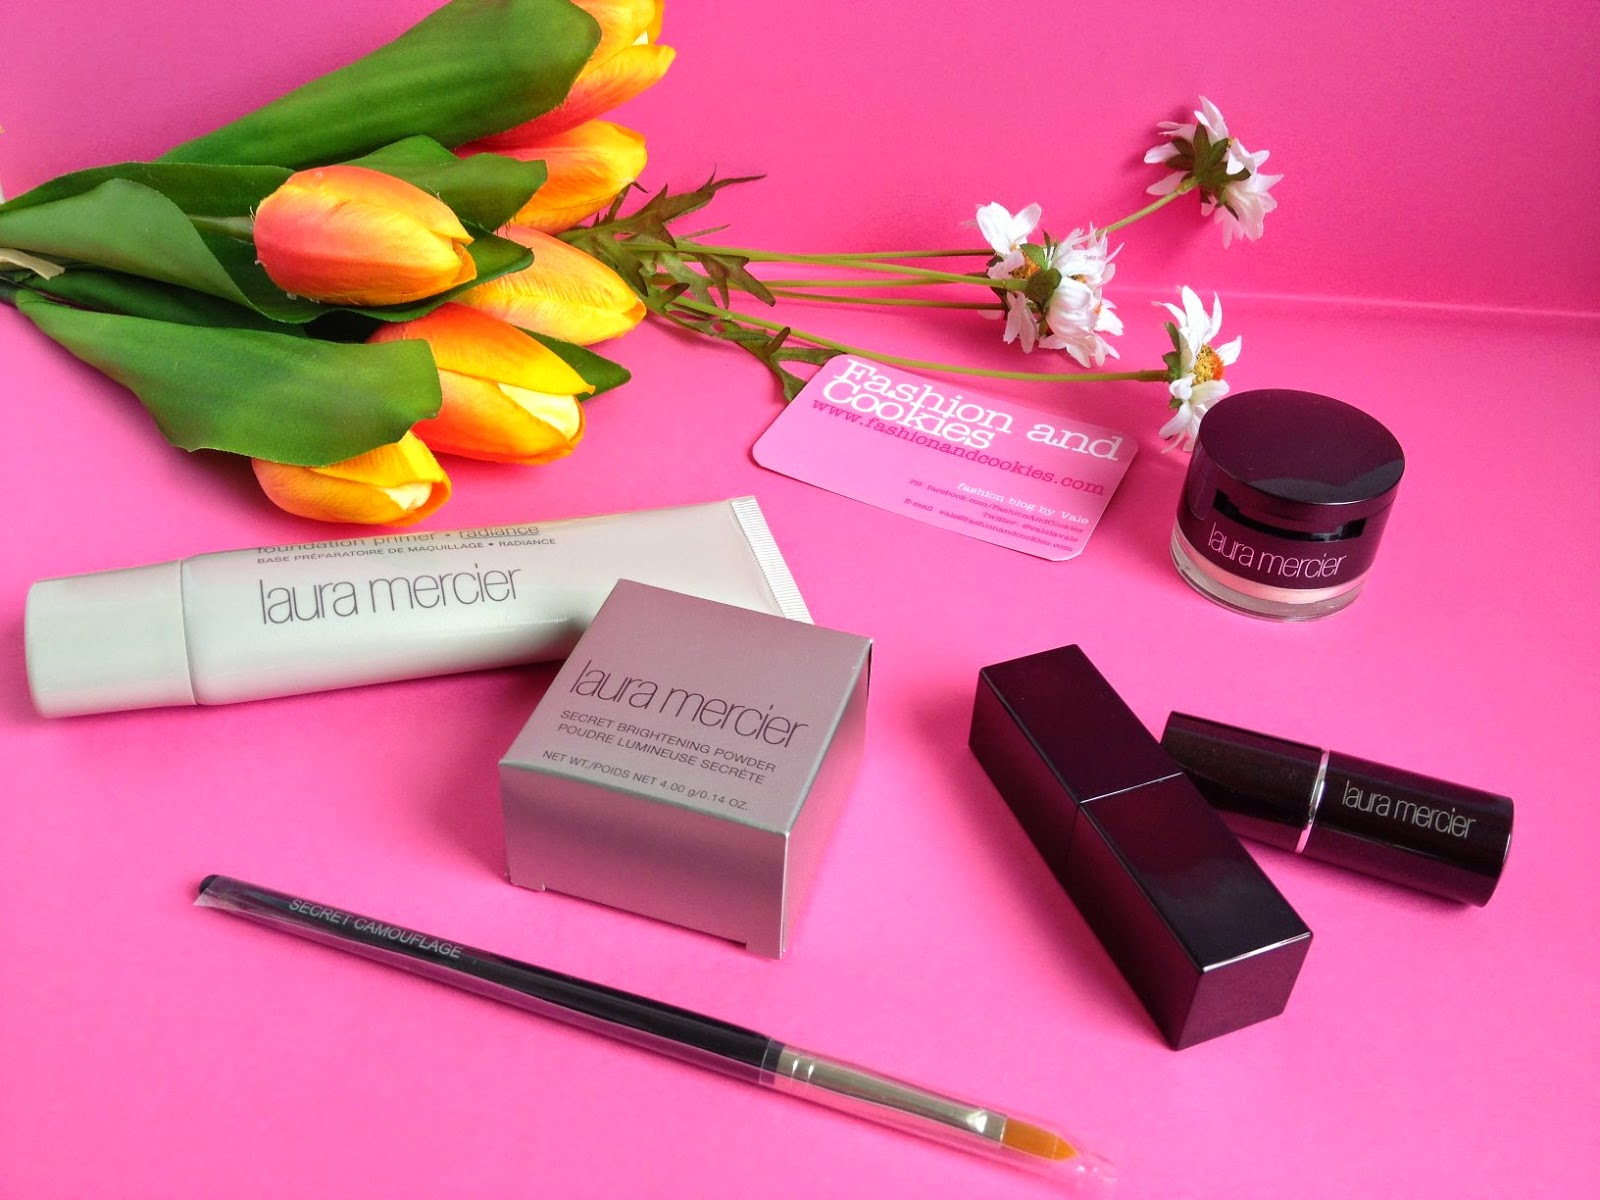 Laura Mercier makeup on Stefano Saccani Parma, Laura Mercier haul,  Laura Mercier must haves, Fashion and Cookies, fashion blog